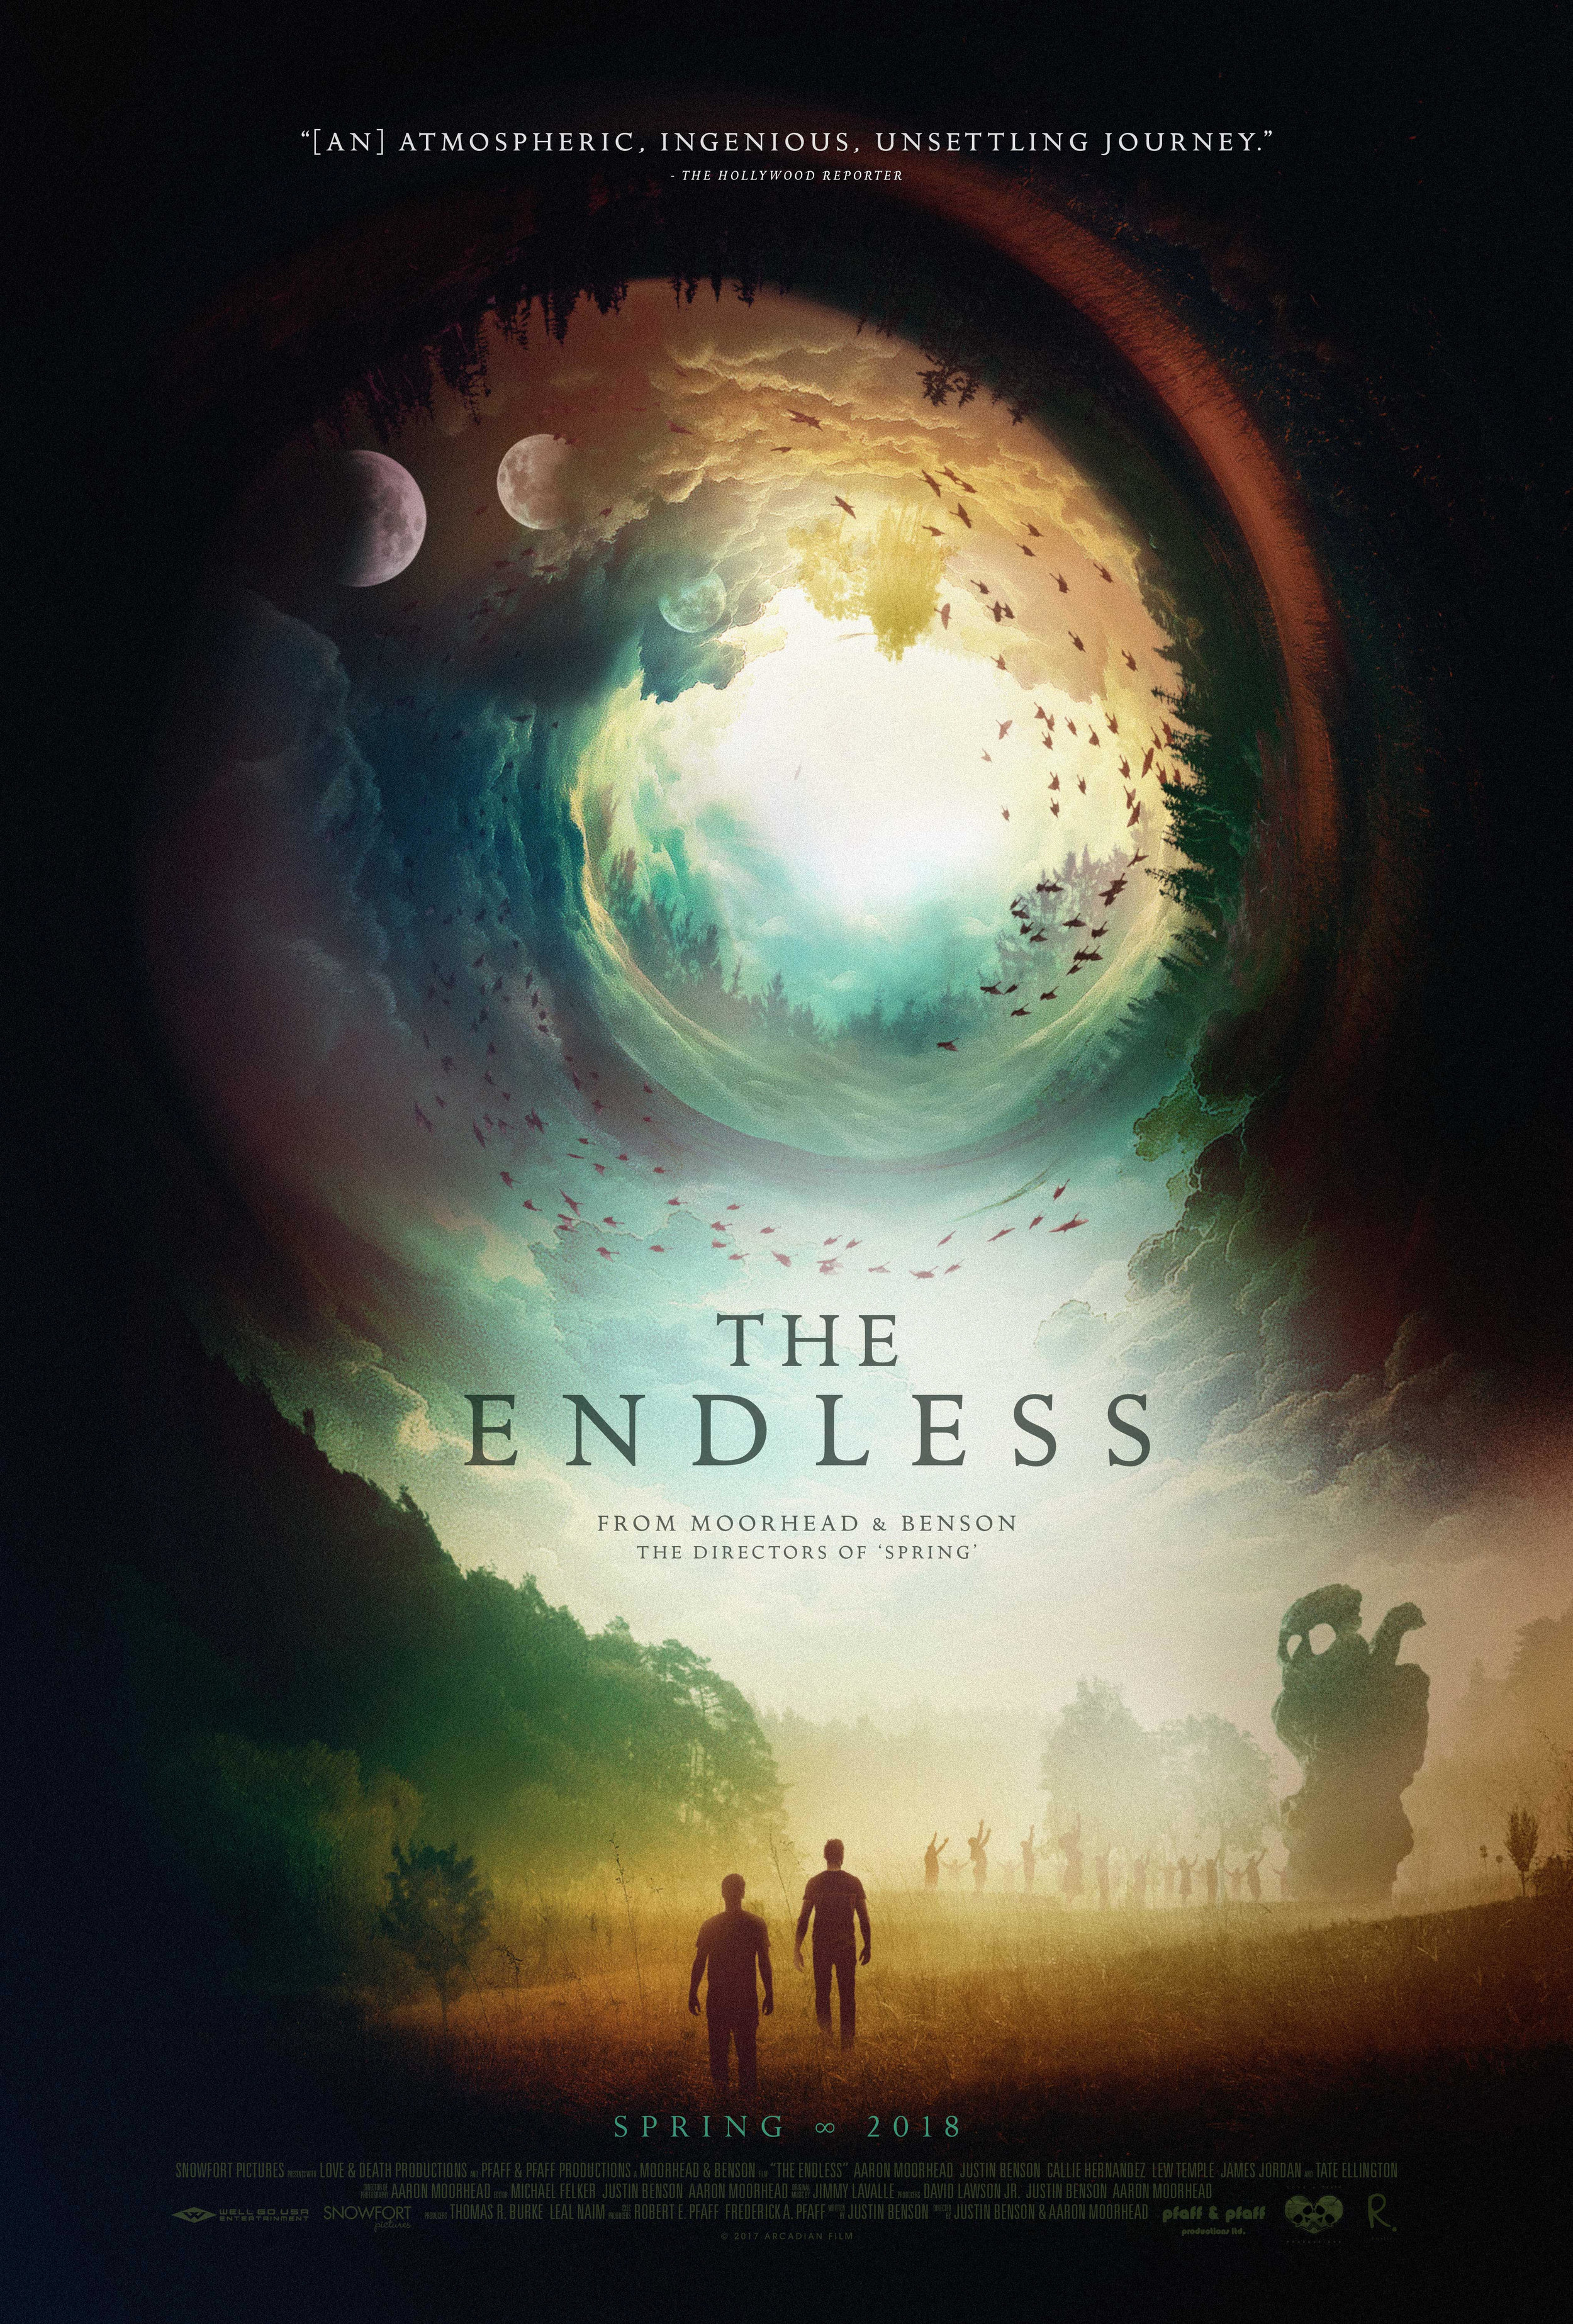 THE ENDLESS   Directed by: Justin Benson & Aaron Moorhead   Starring: Aaron Moorhead, Justin Benson, Callie Hernandez, Tate Ellington, Lew Temple, James Jordan, Shane Brady, Kira Powell, David Lawson, Emily Montague, Peter Cilella, Vinny Curran.  Two brothers return to the death cult from which they fled a decade ago only to find that there might be some truth to the group's otherworldly beliefs.   Status: In Theaters April 6, 2018    IMDB